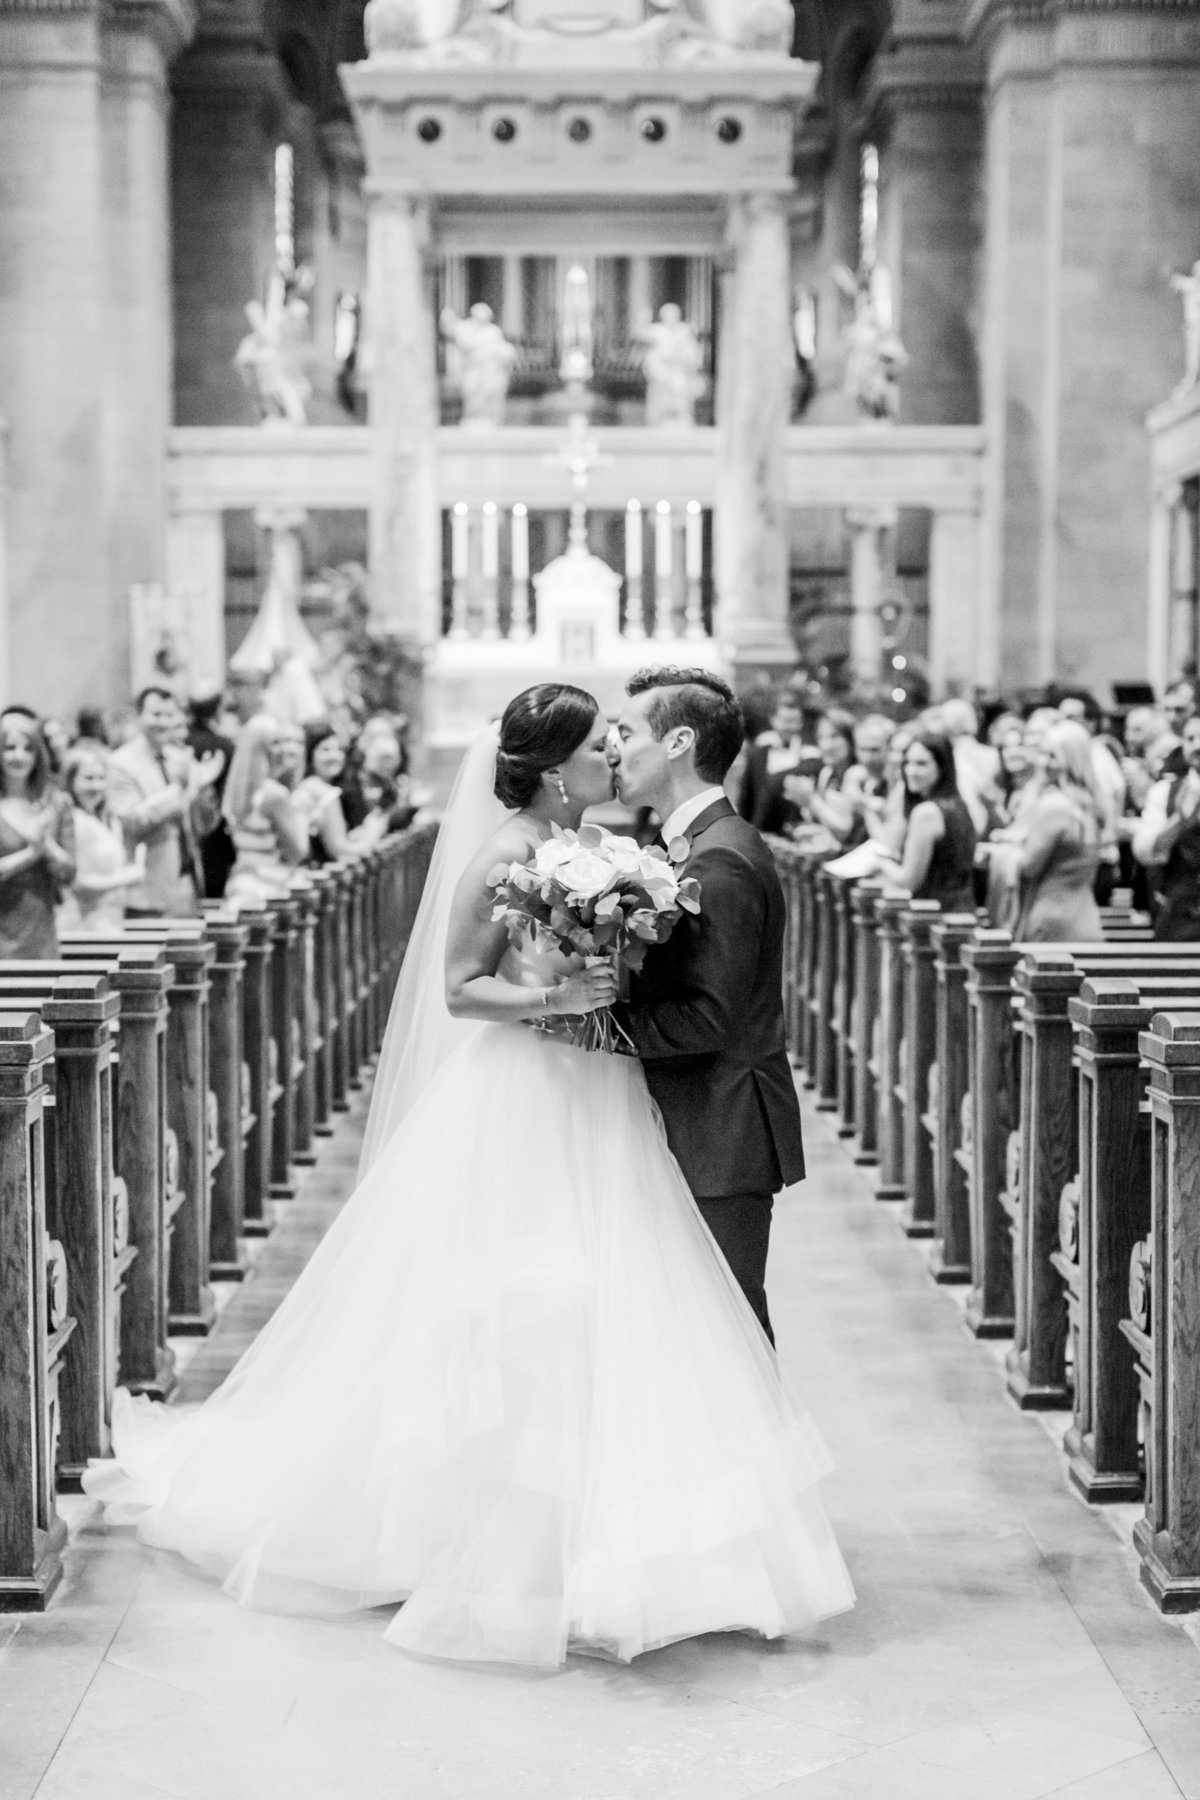 lindsey-taylor-photography-minneapolis-st-peters-basilica-wedding-photographer19